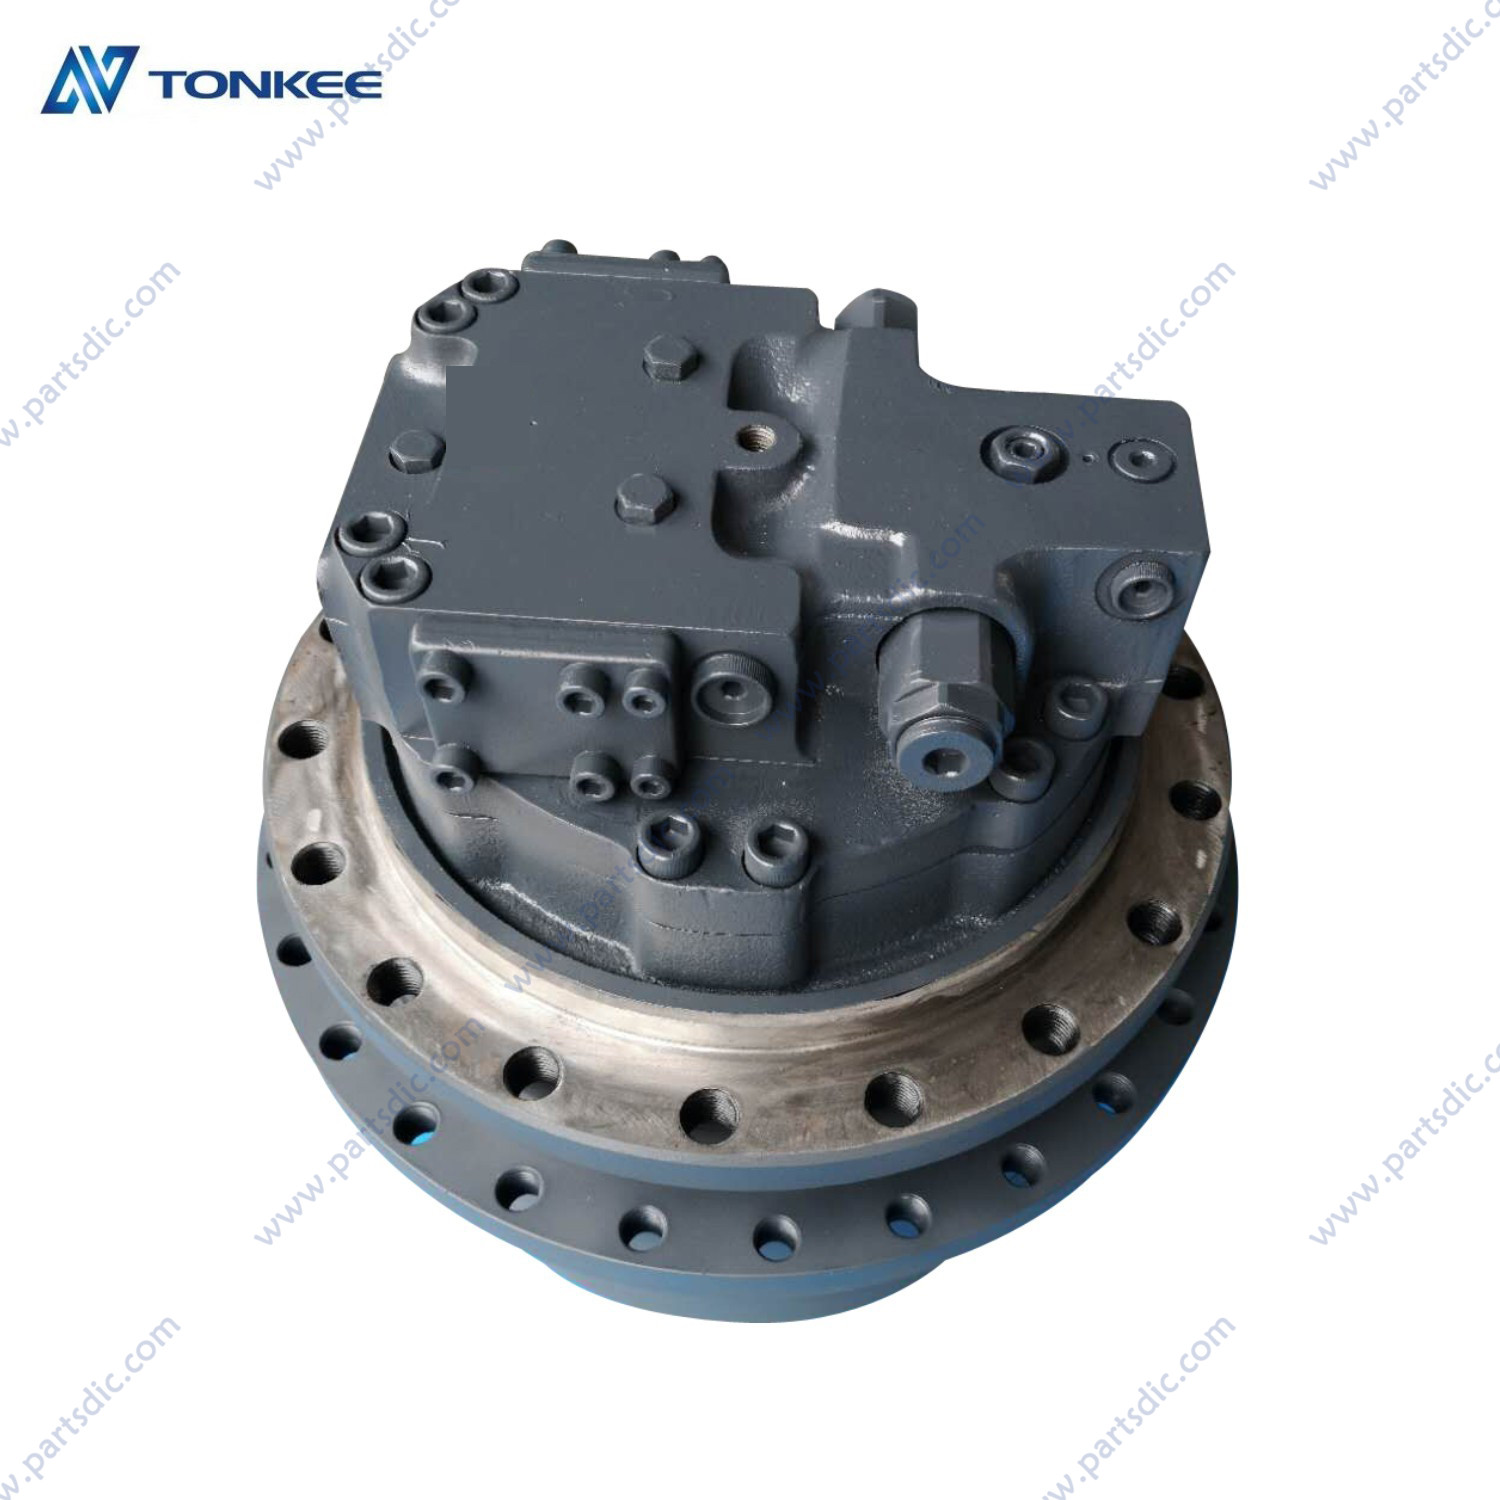 NEW 31Q9-40032 travel motor assy excavator Robex 330LC R330 R330LC-9S final drive group suitable for HYUNDAI